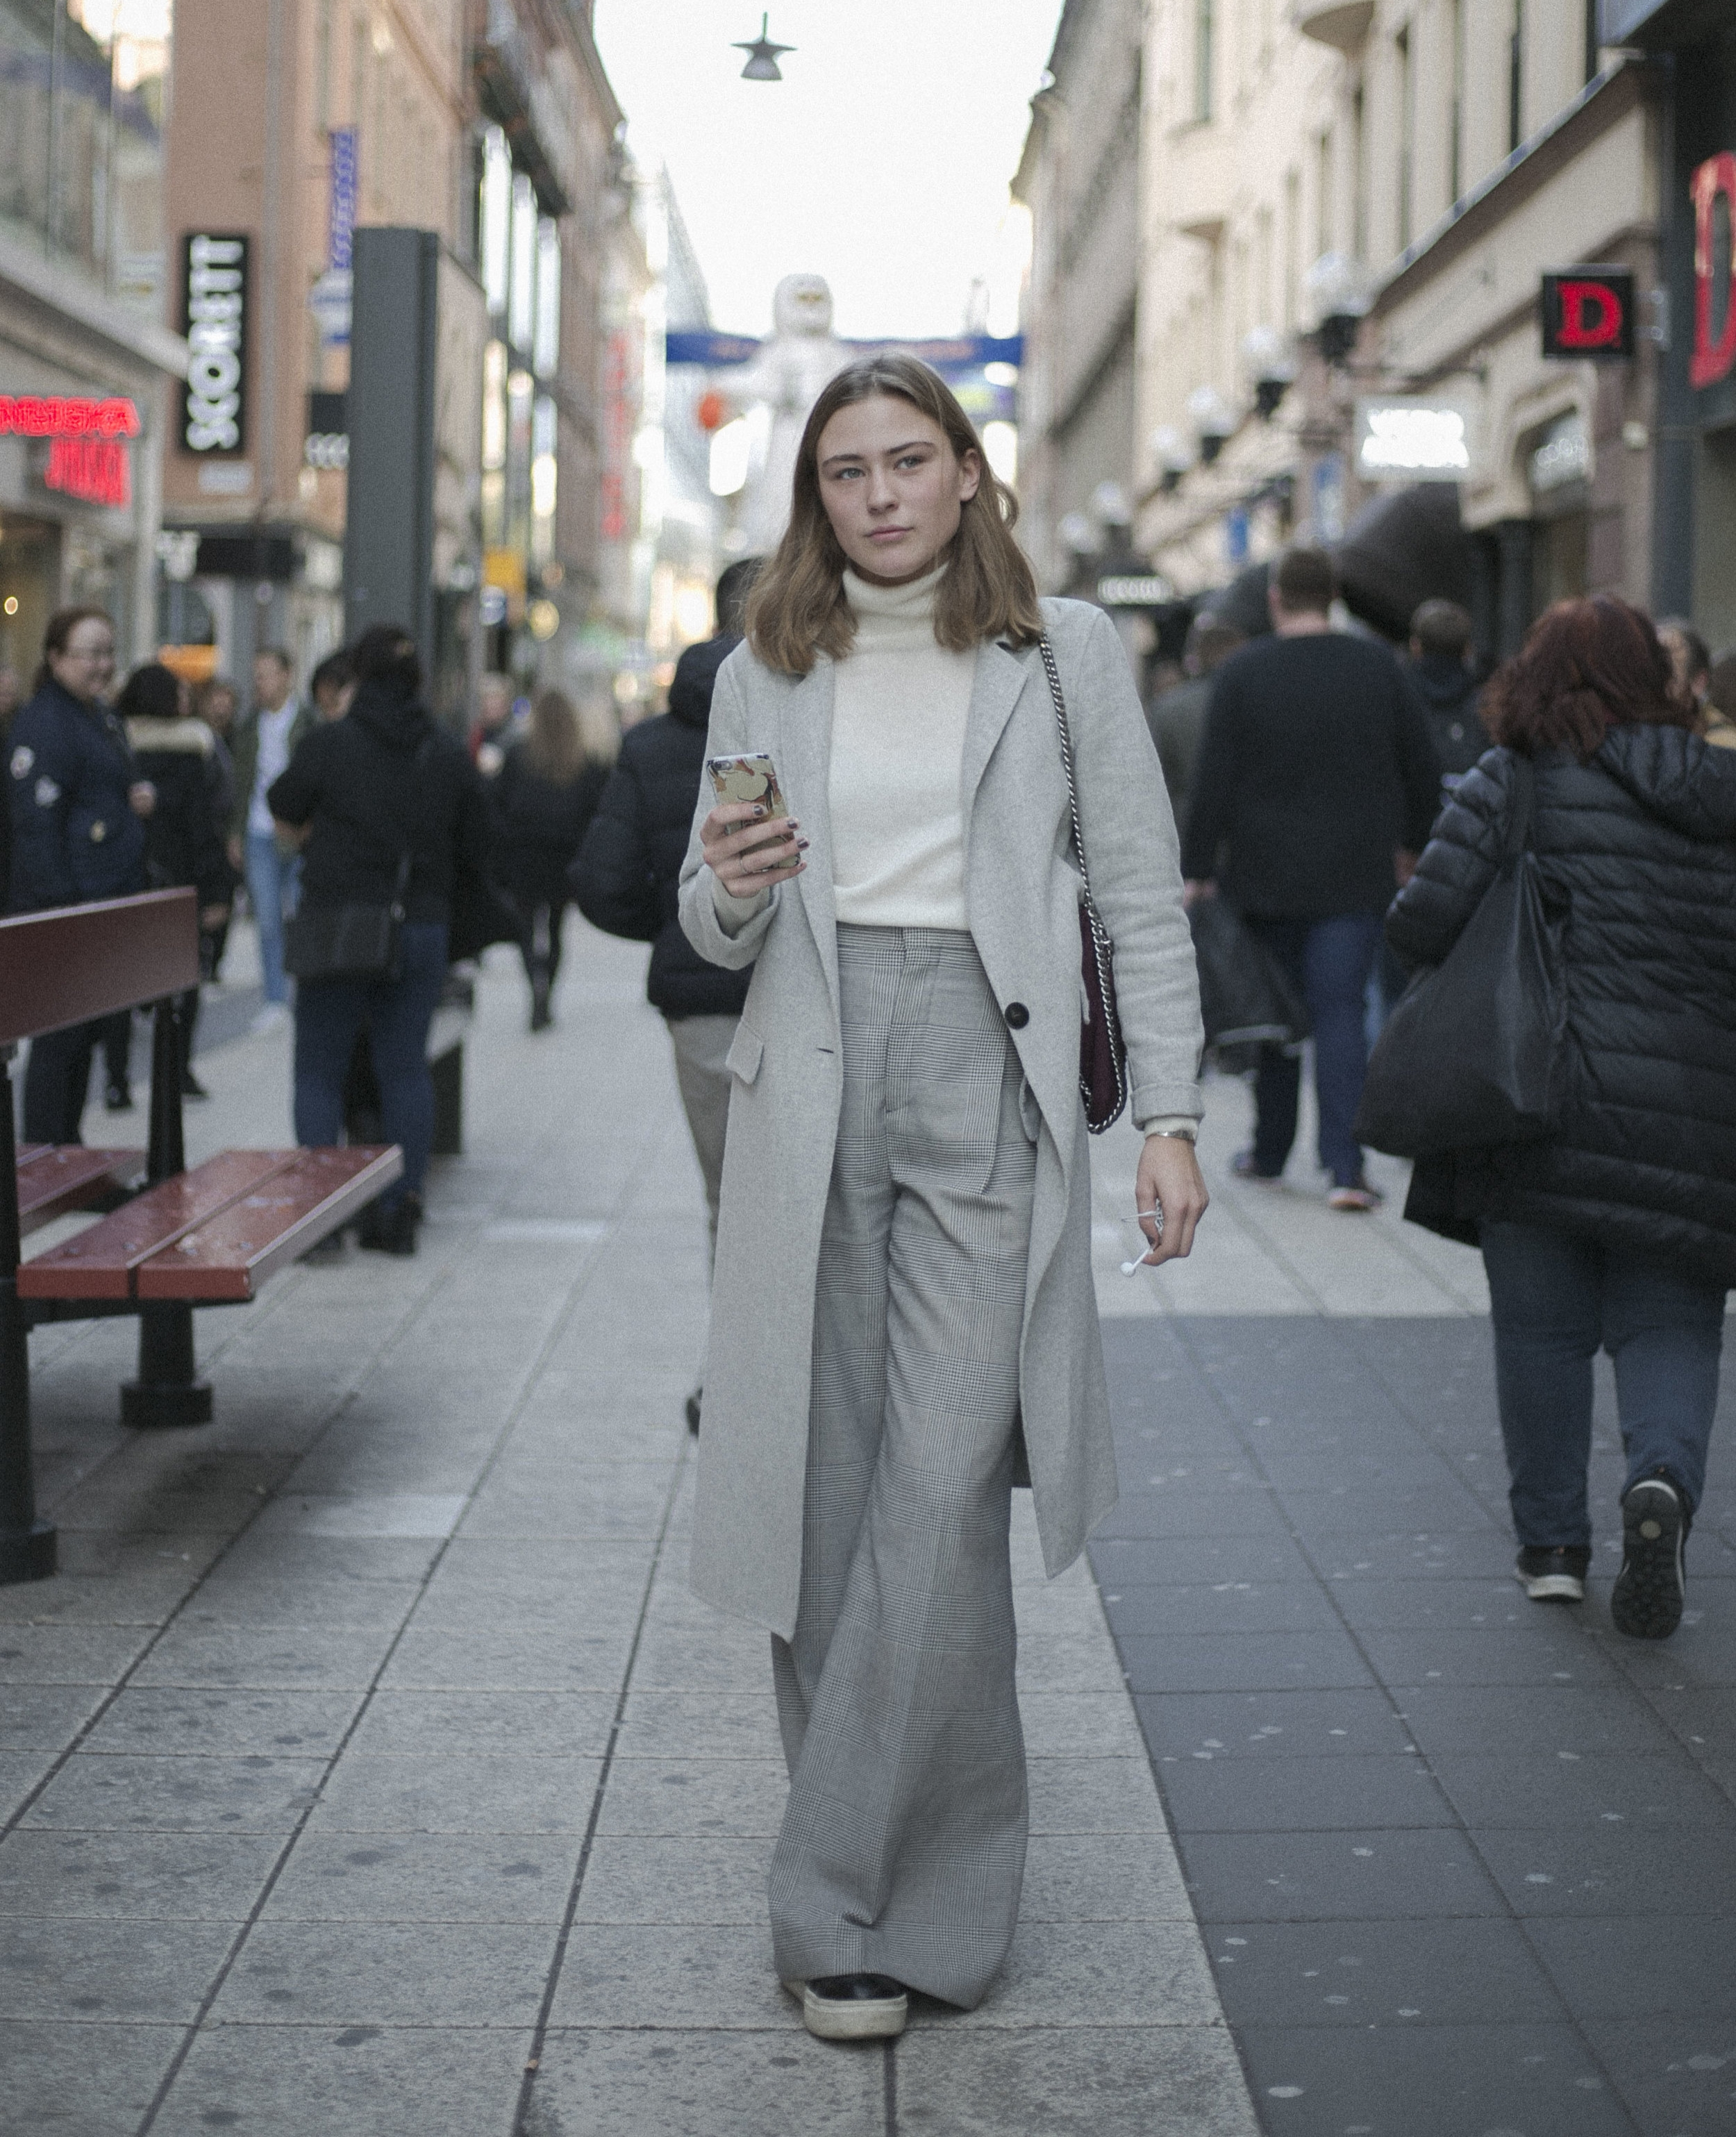 Simplicity and elegance with zarah wear on the streets of from down town Stockholm